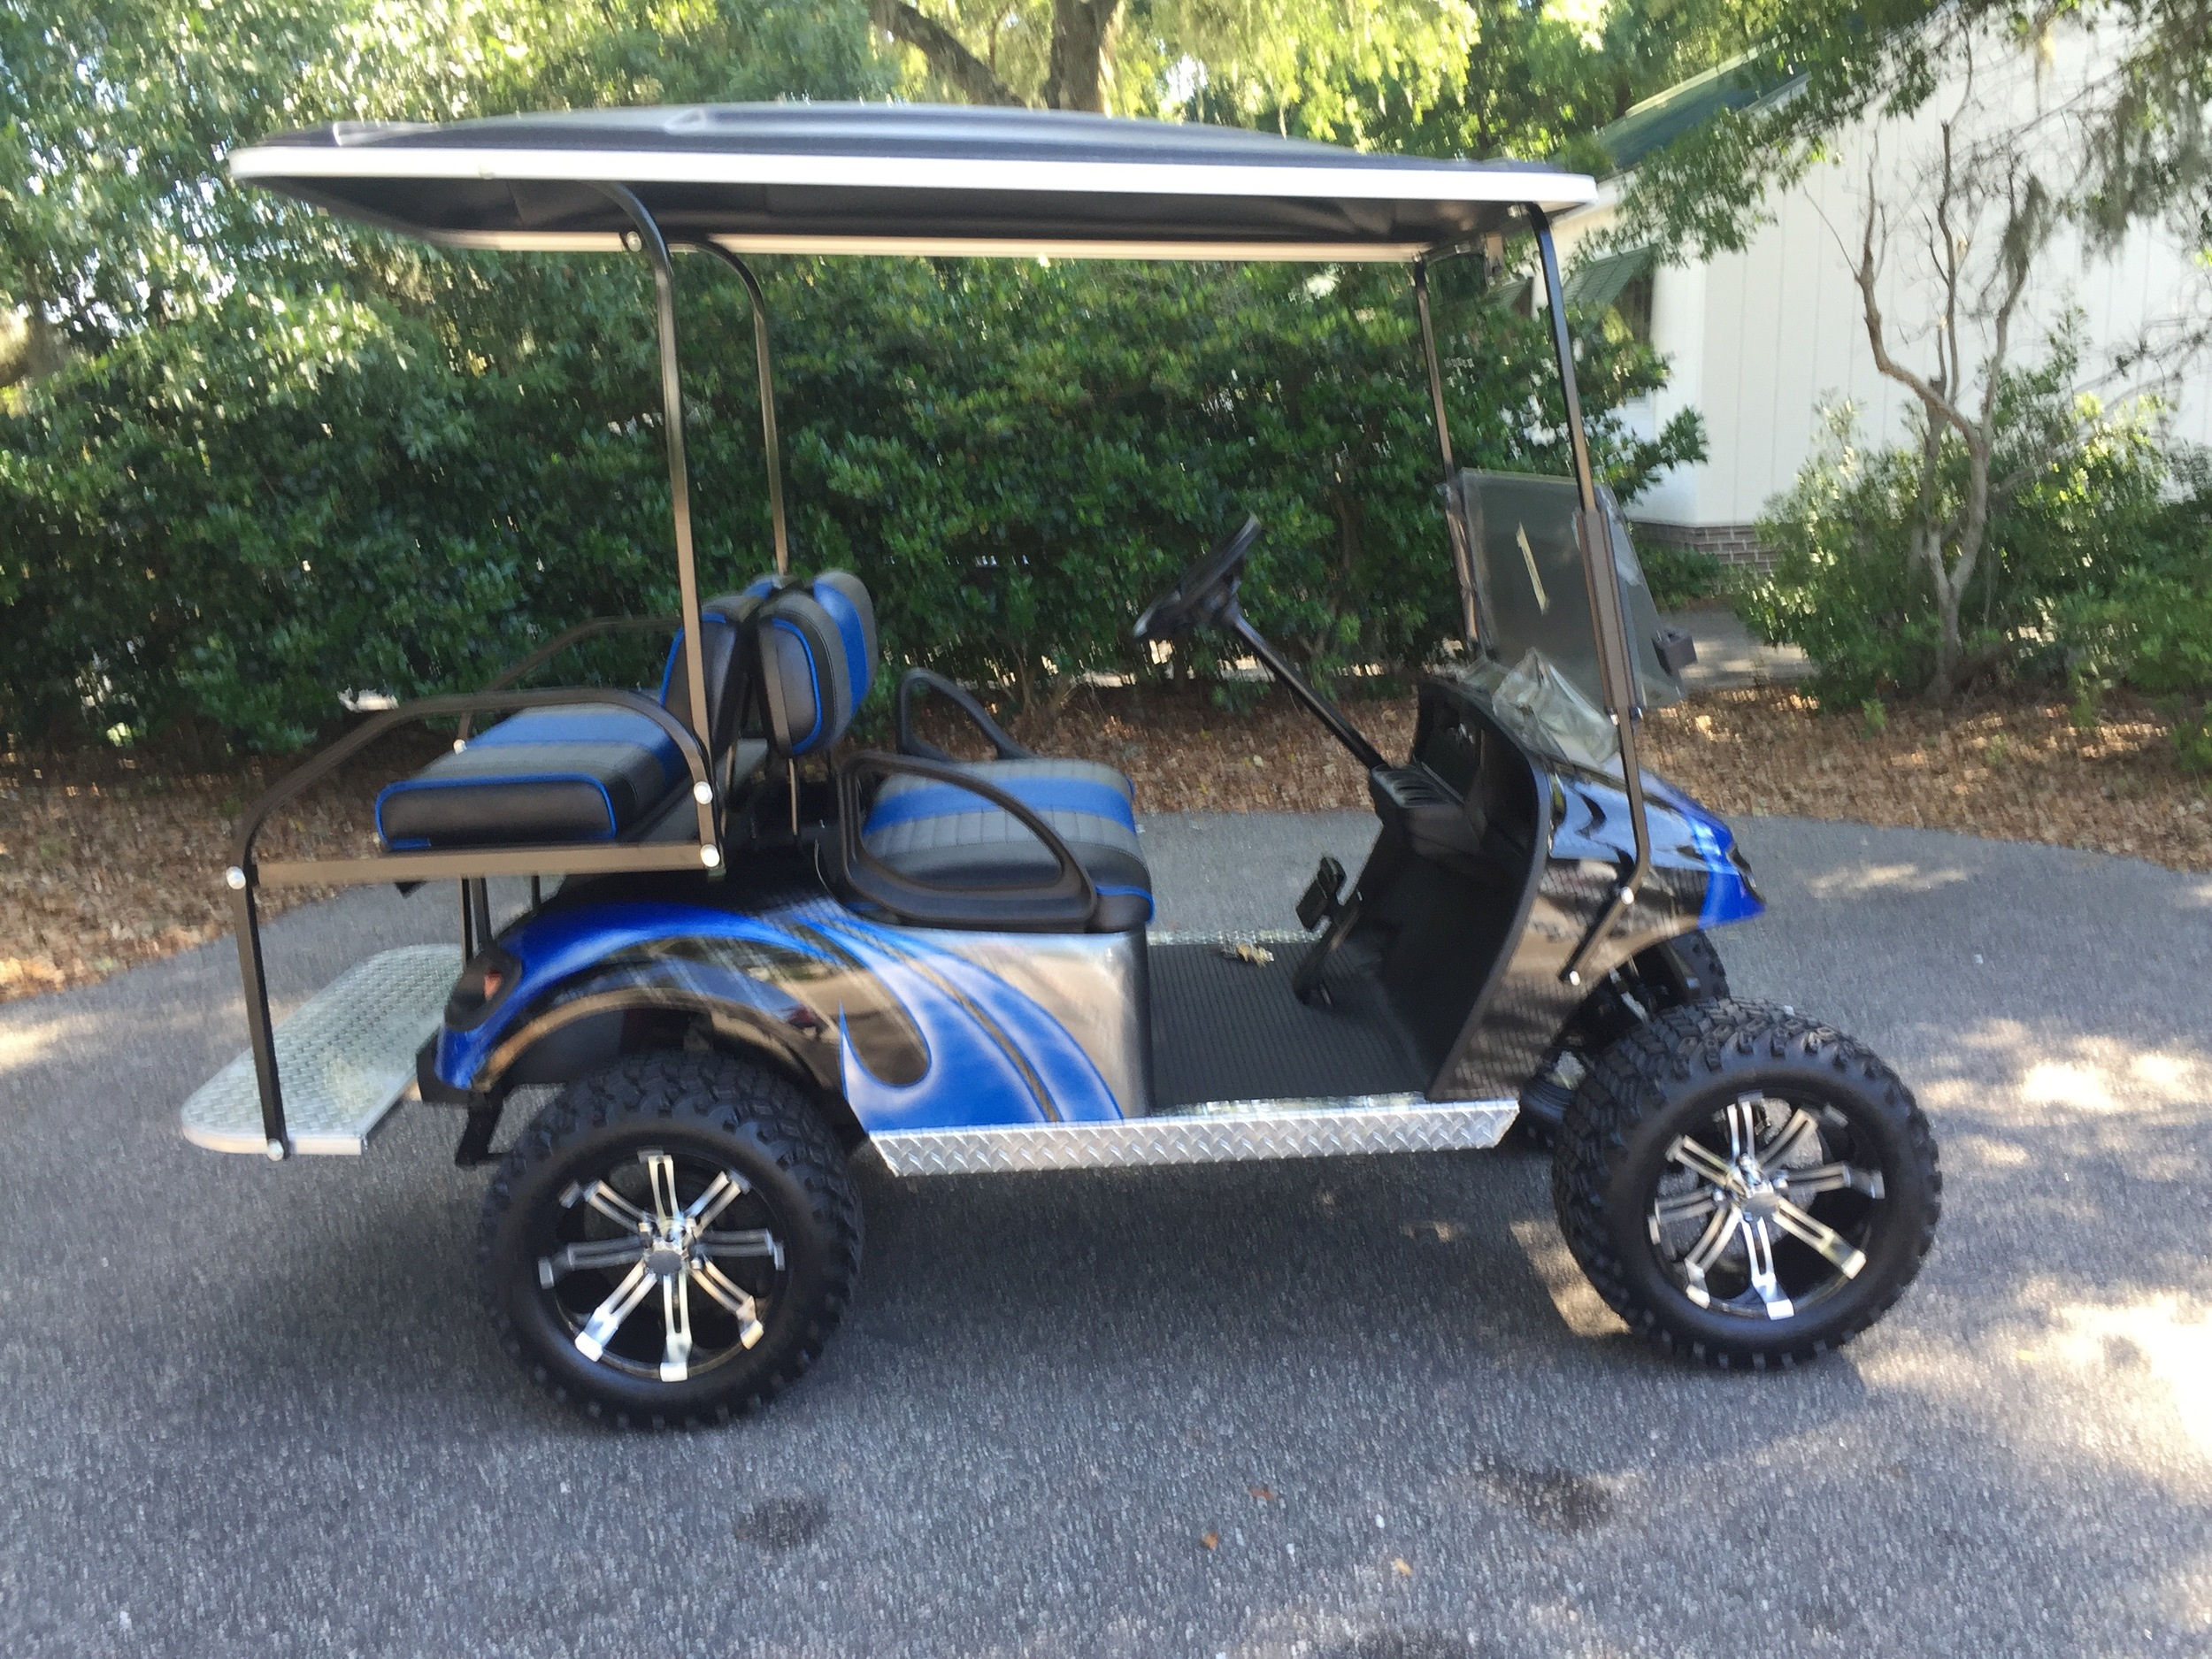 Viper Blue Swirl EZGO Lifted Cart  Viper blue/charcoal/black seats, black extended top, new batteries, high speed code, LED lights, Backlash (23x10x14) tires, mirror, flip windshield, and state of charge meter